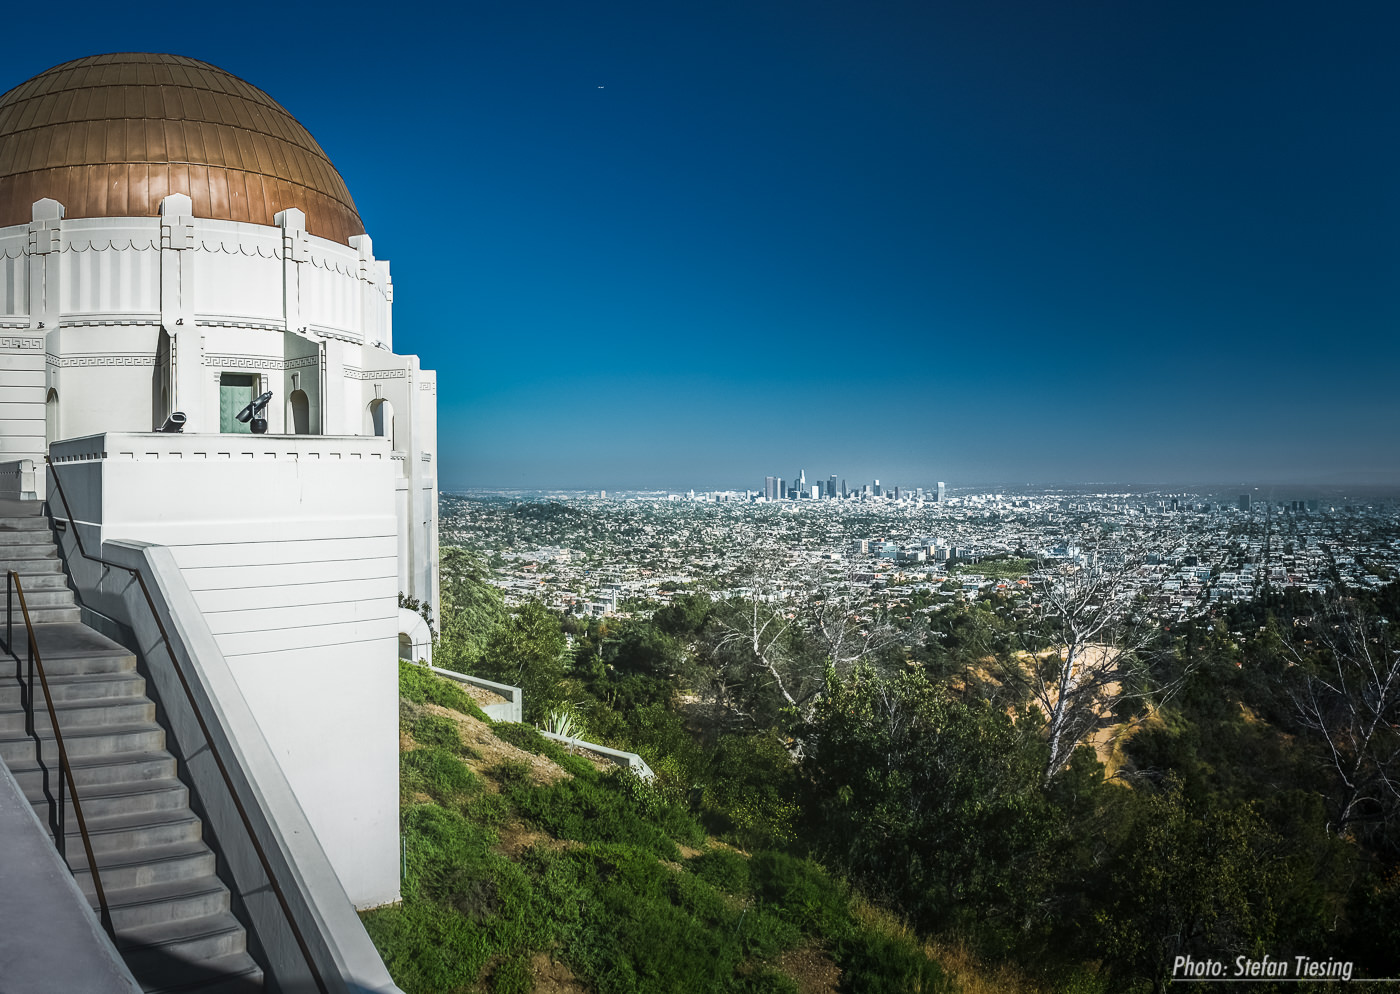 Griffith Observatory and View over Los Angeles